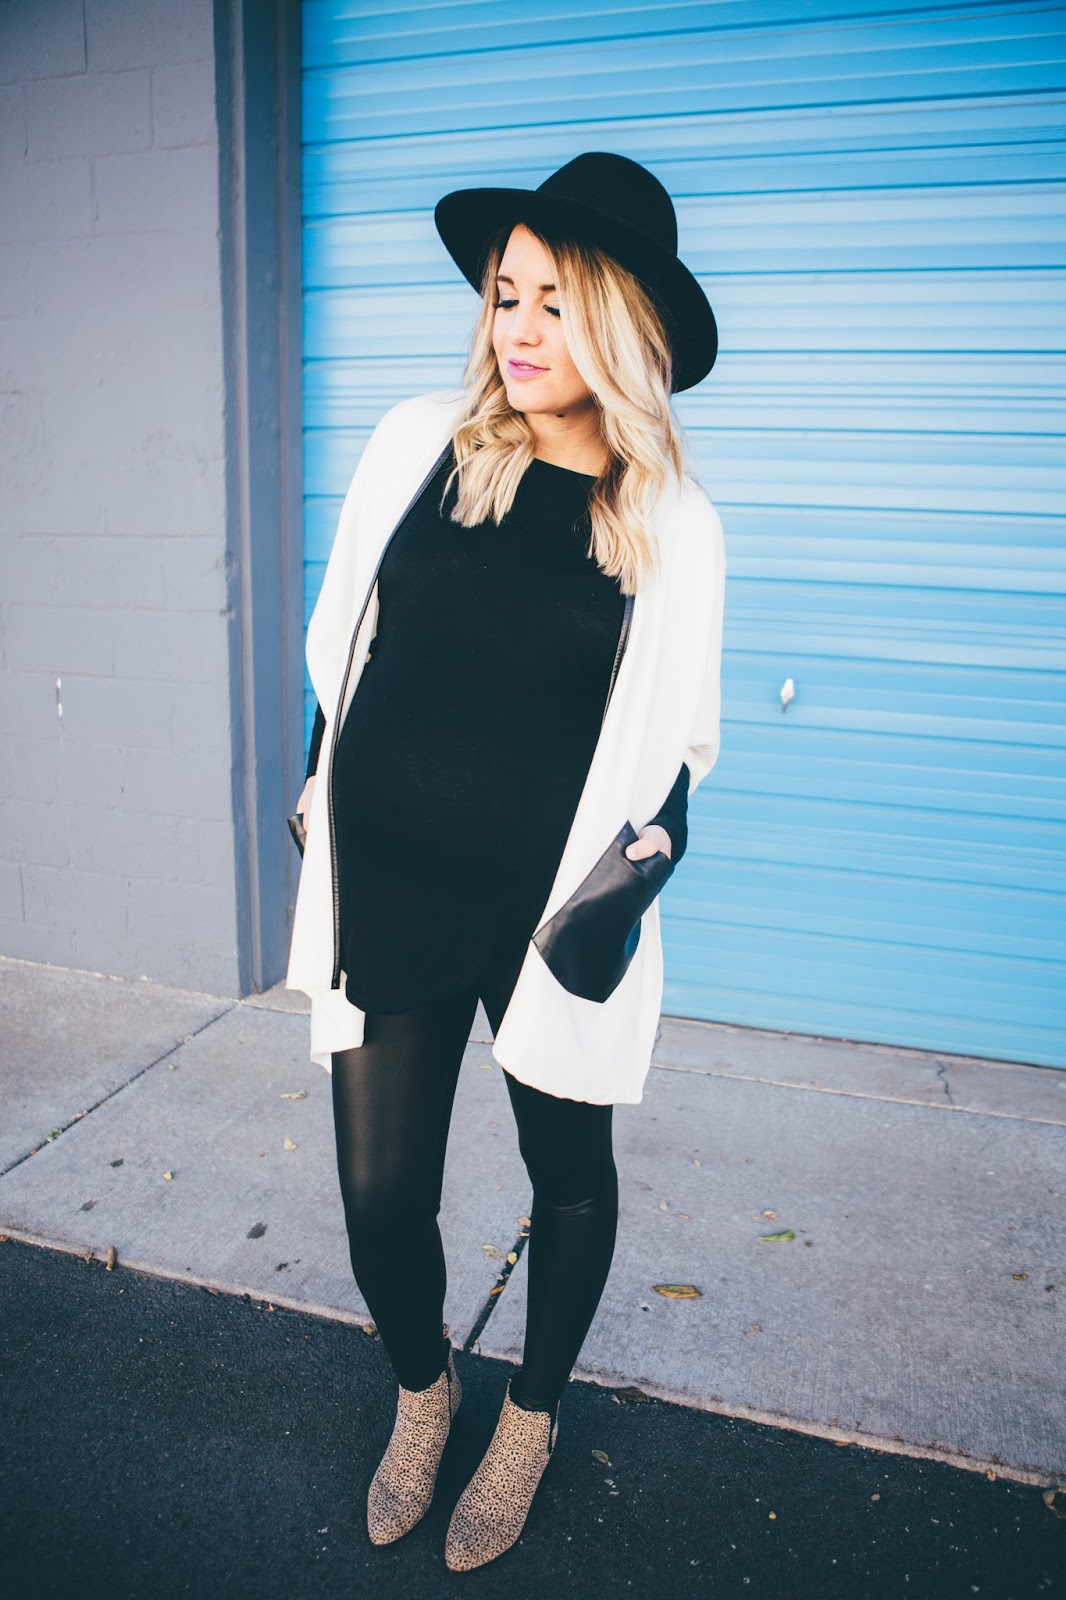 White Poncho Blue Wall Spray Tans Wiwt Link Up The Red Closet Diary